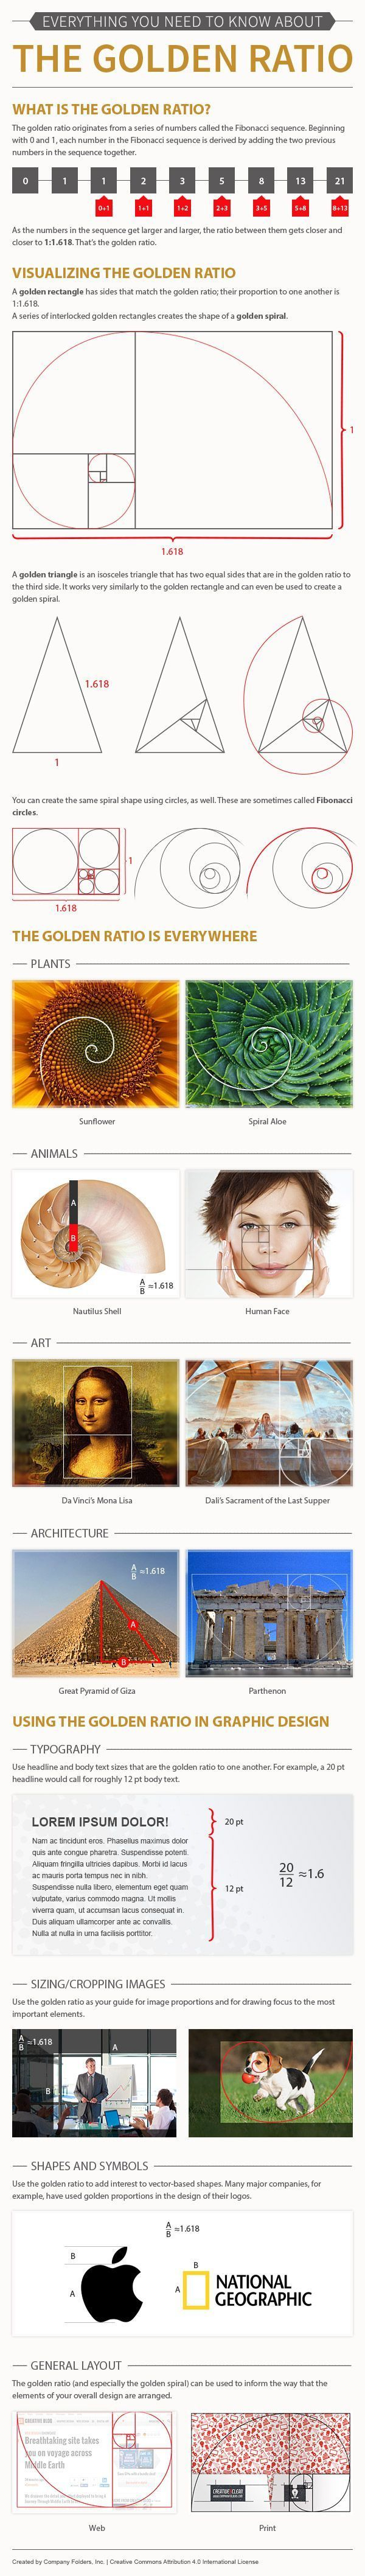 Everything you Need to Know About The Golden Ratio #infographic #GoldenRatio